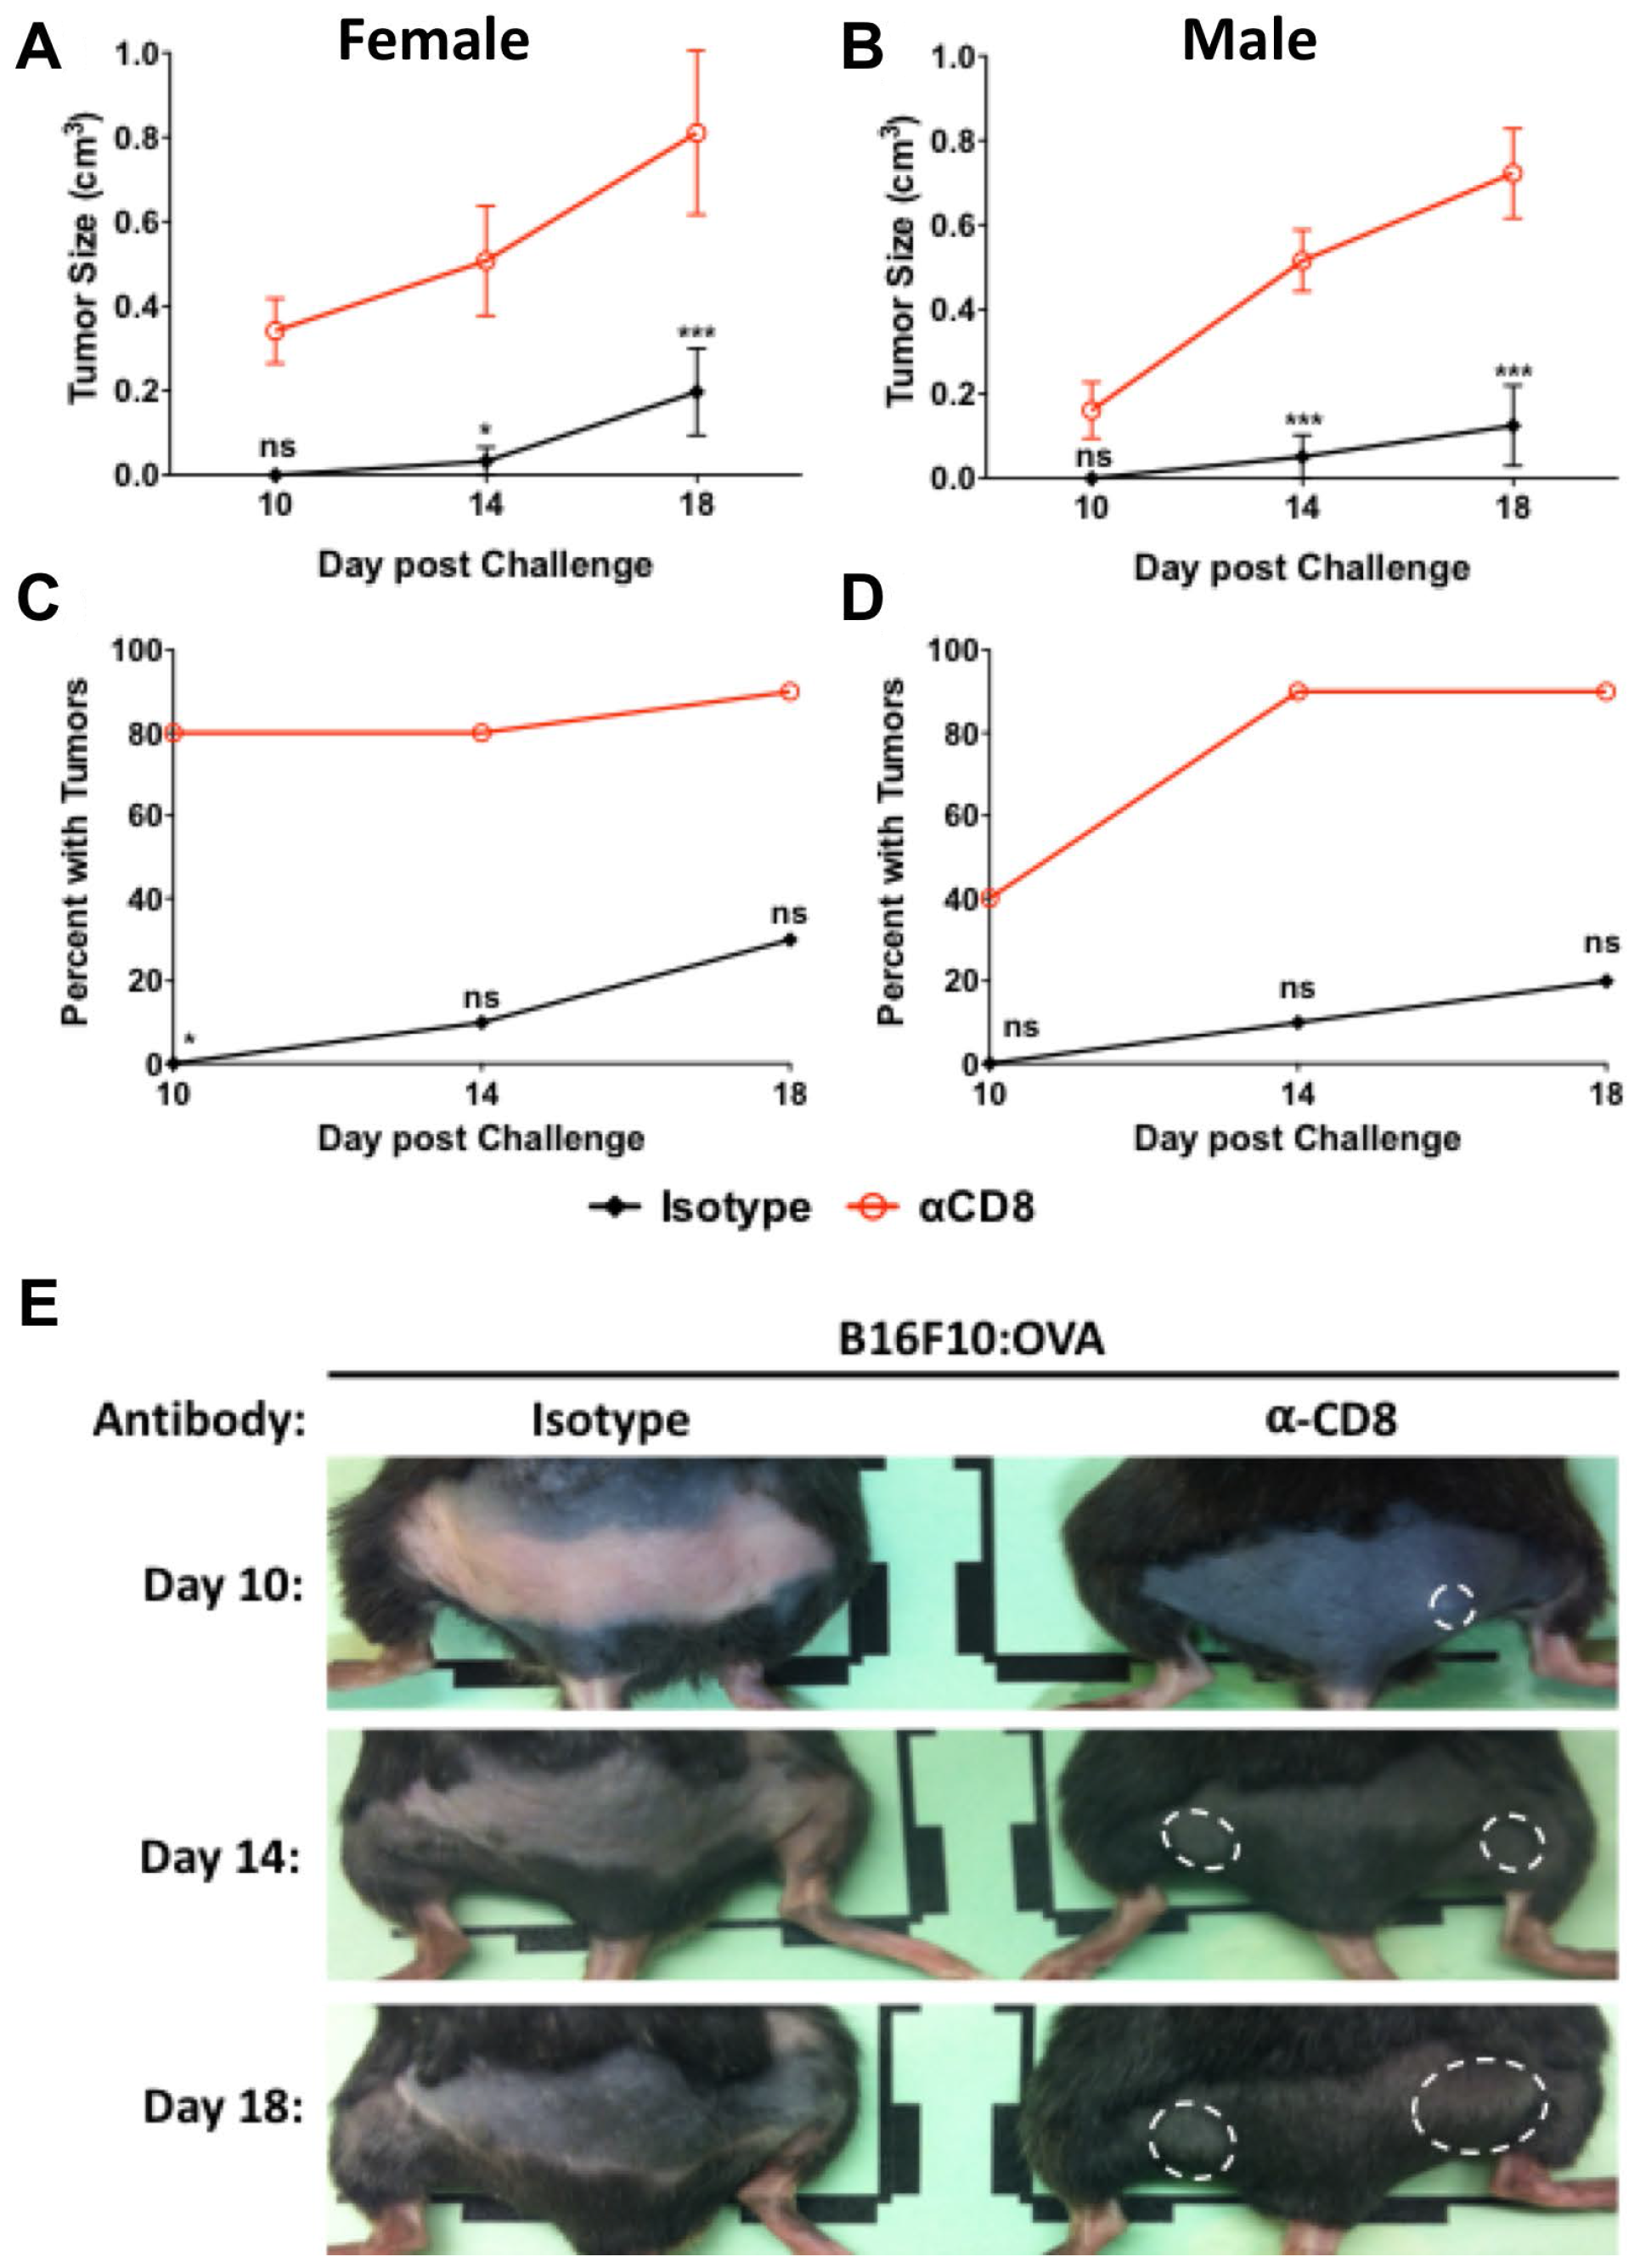 CD8+ cells provide protection 65 days after vaccination.